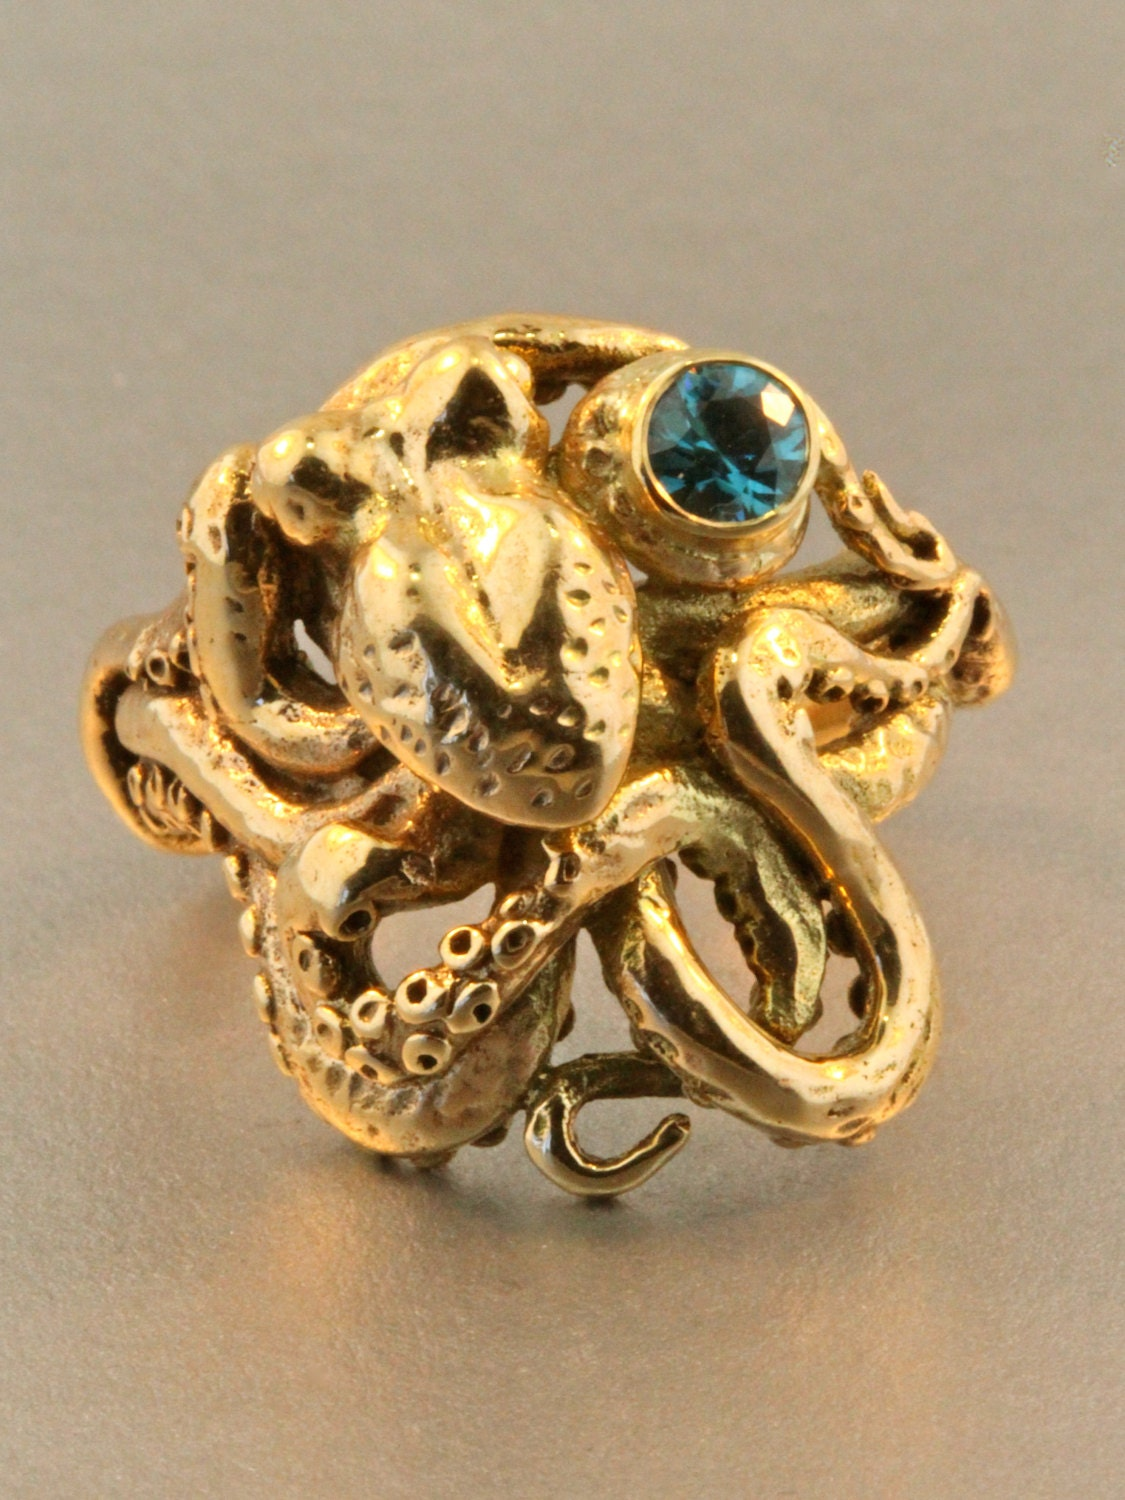 gold octopus ring gold octopus jewelry jewelry